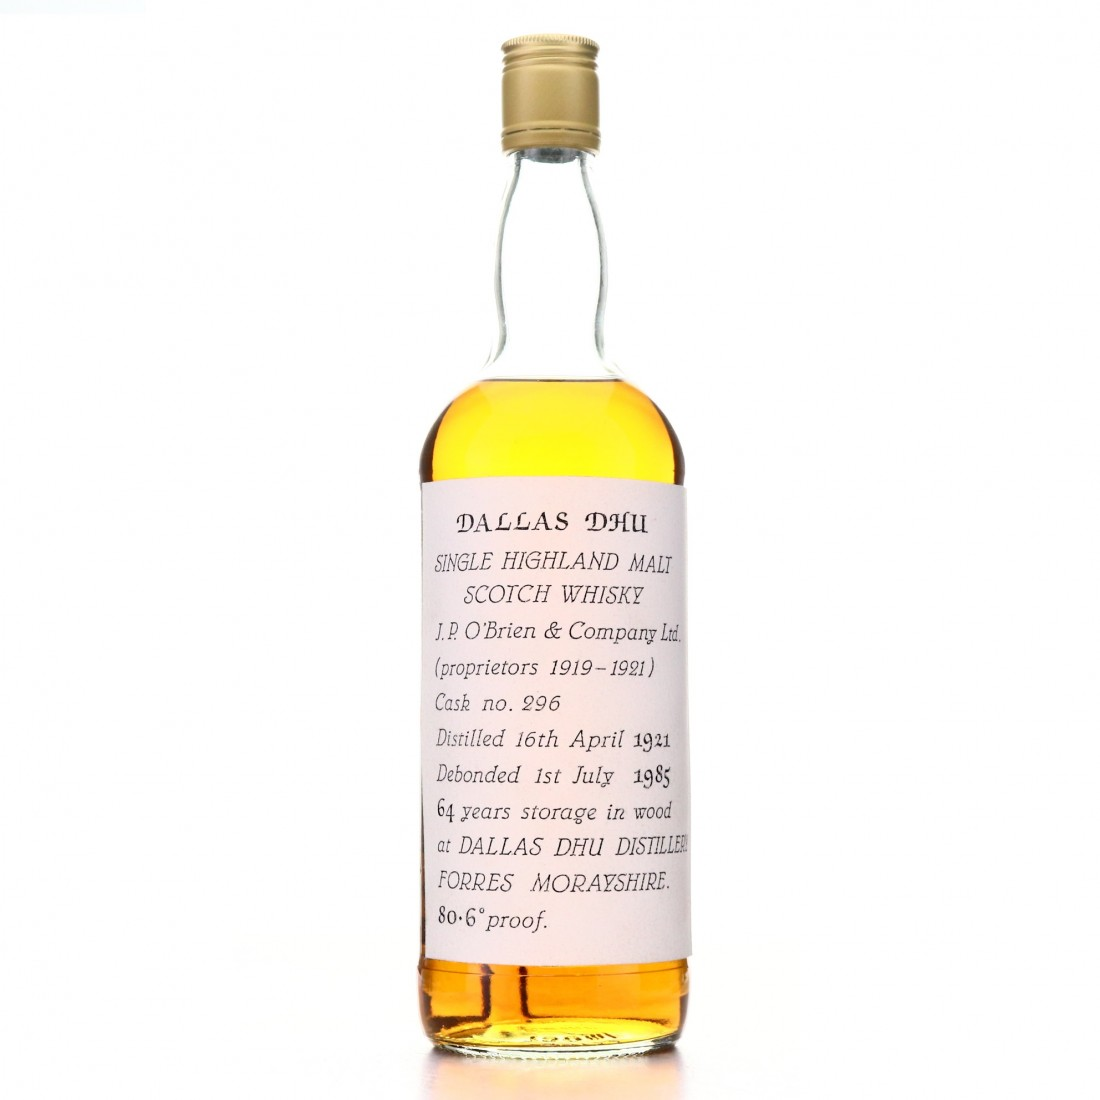 *Dallas Dhu 1921 Single Cask 64 Year Old #296